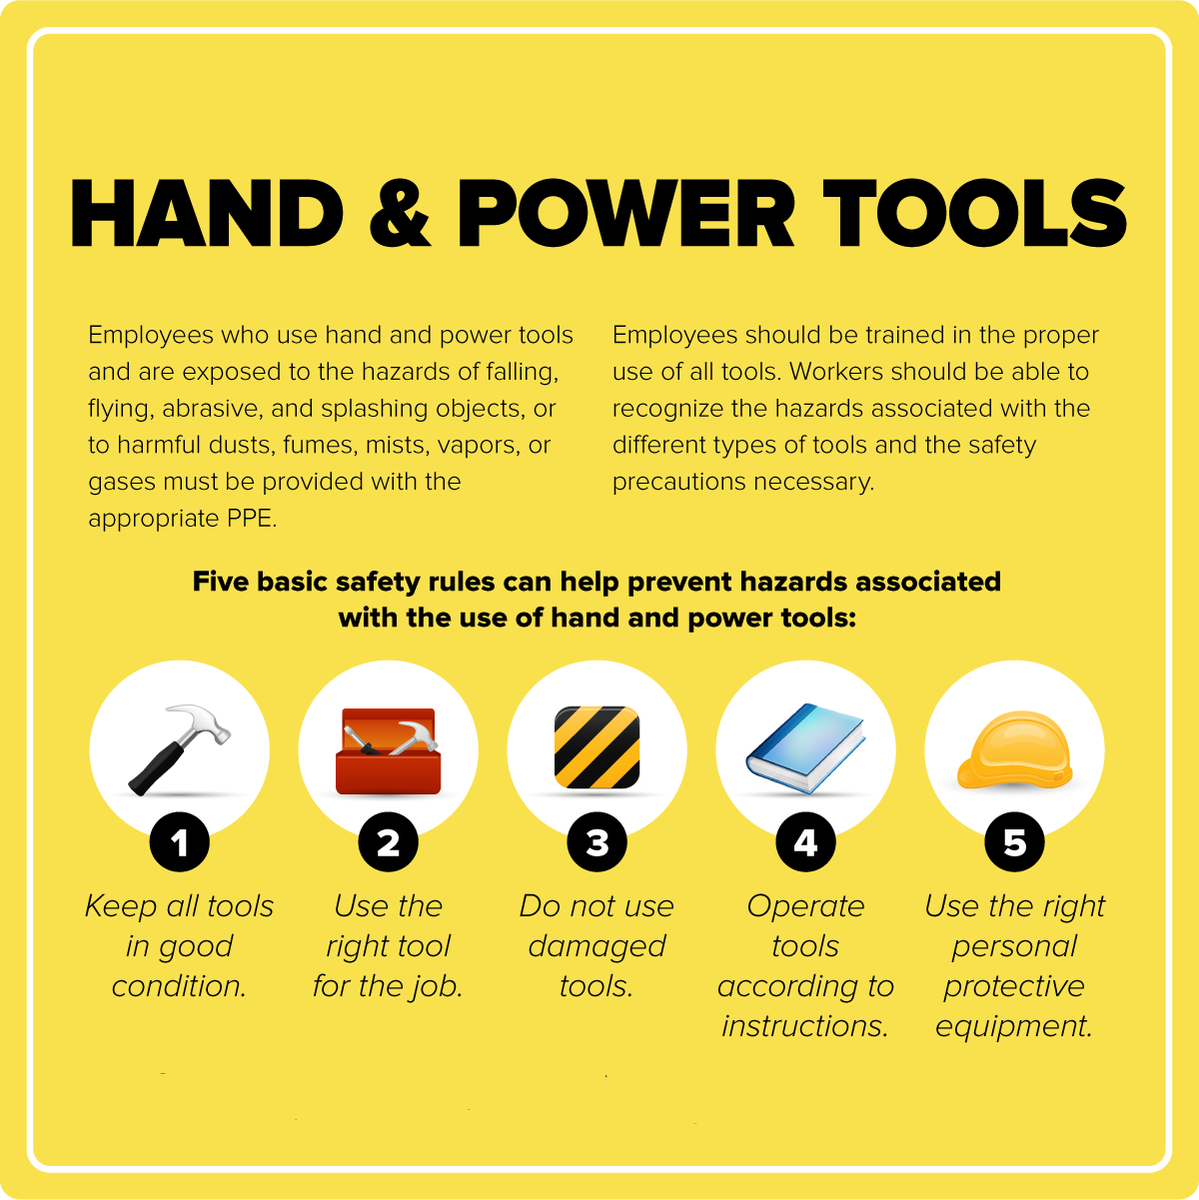 10 Best Reciprocating Saws Reviewed In Detail Jan 2021 Health And Safety Poster Occupational Health And Safety Power Tool Safety